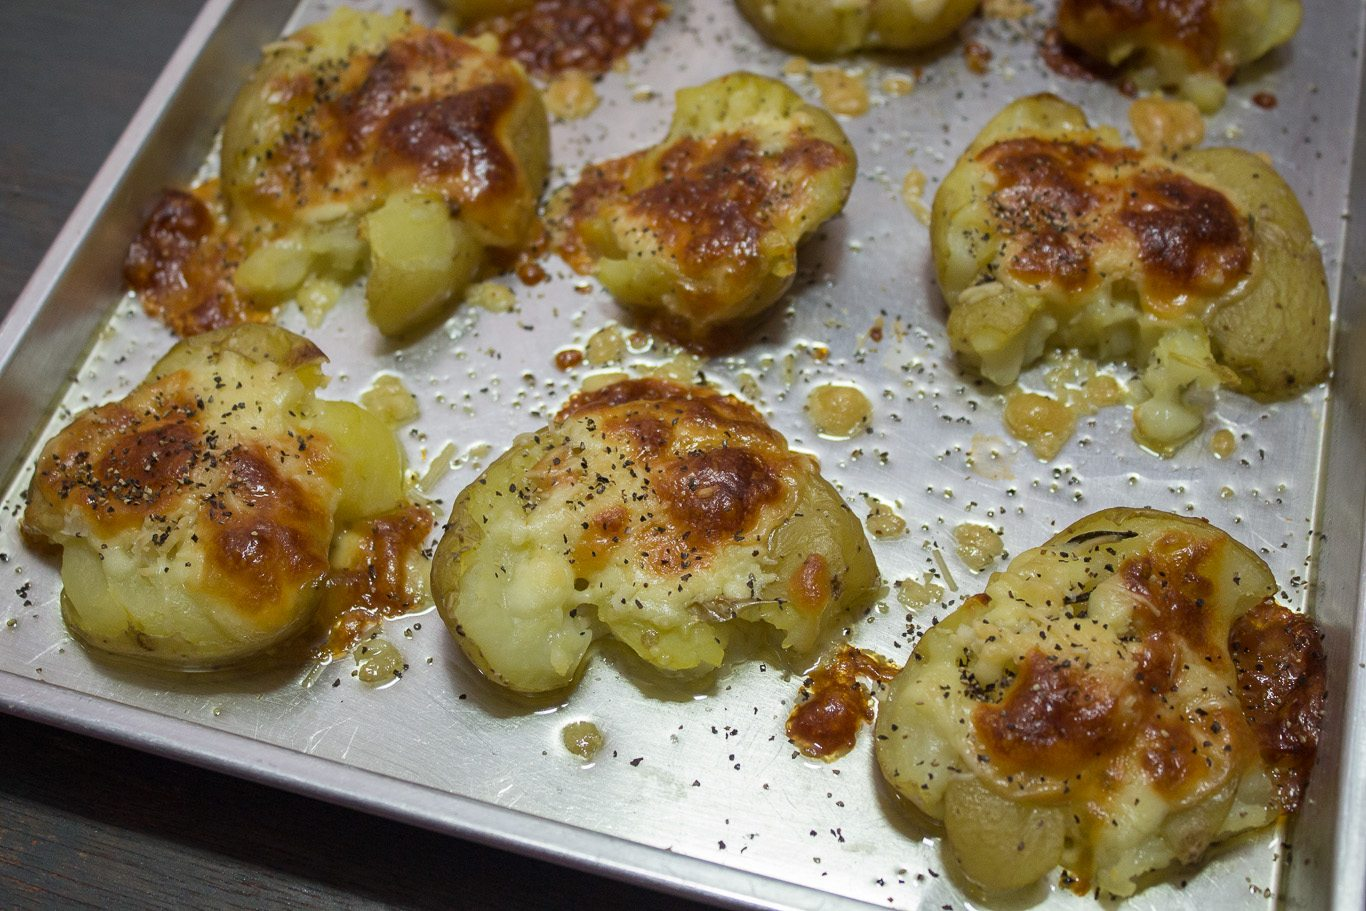 Garlic and Rosemary Smashed Potatoes